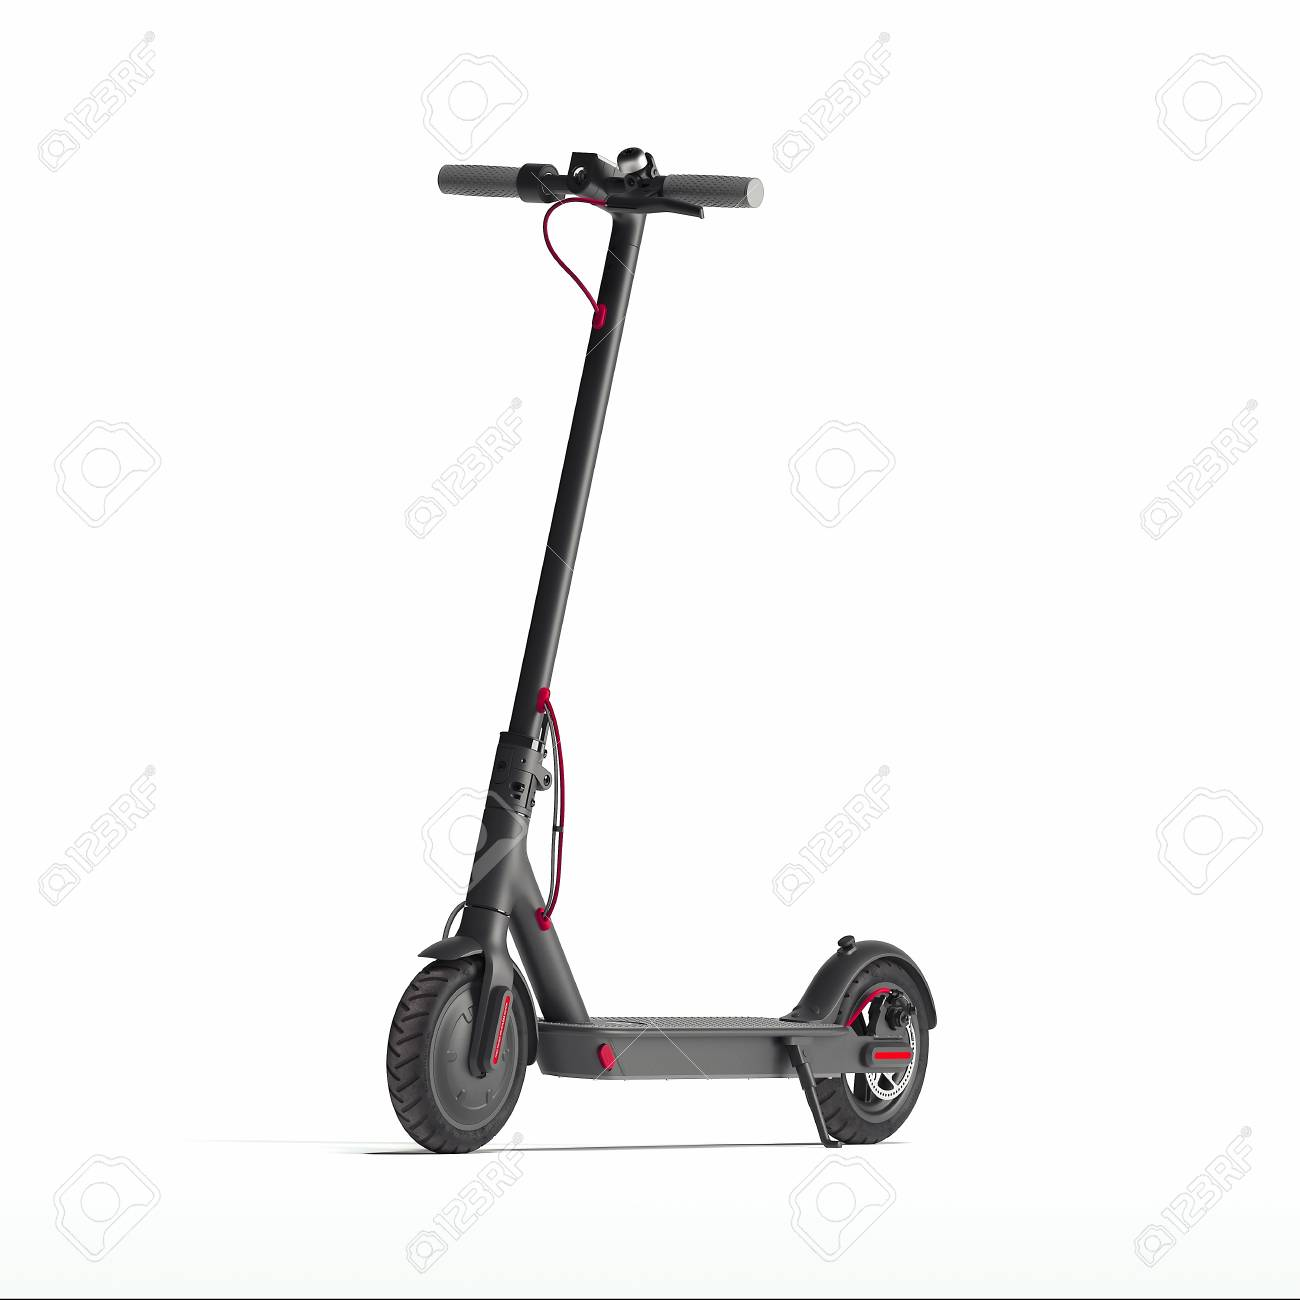 Electric scooter isolated on white background. eco transport. 3d rendering - 117814173